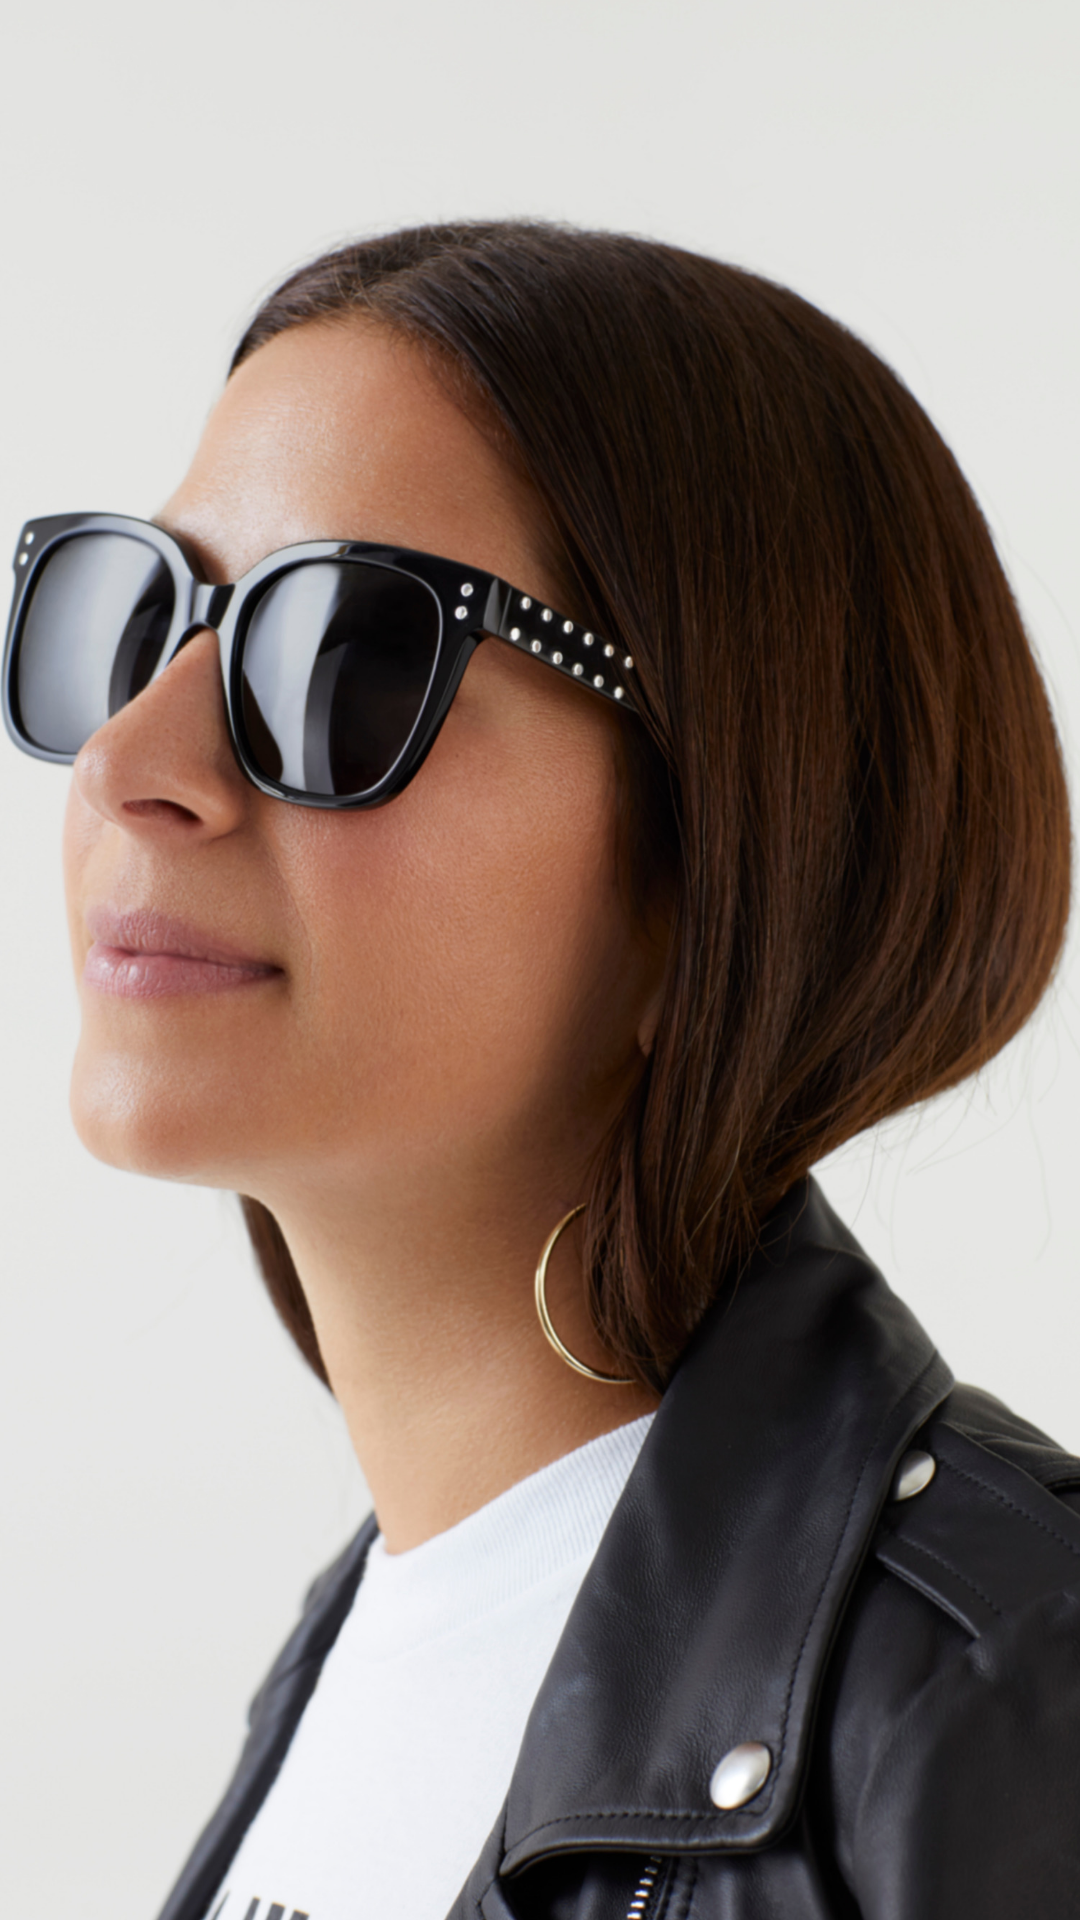 974d1646285a Rebecca Minkoff wears the Cyndi Acetate Square Sunglasses from her  sunglasses collection.